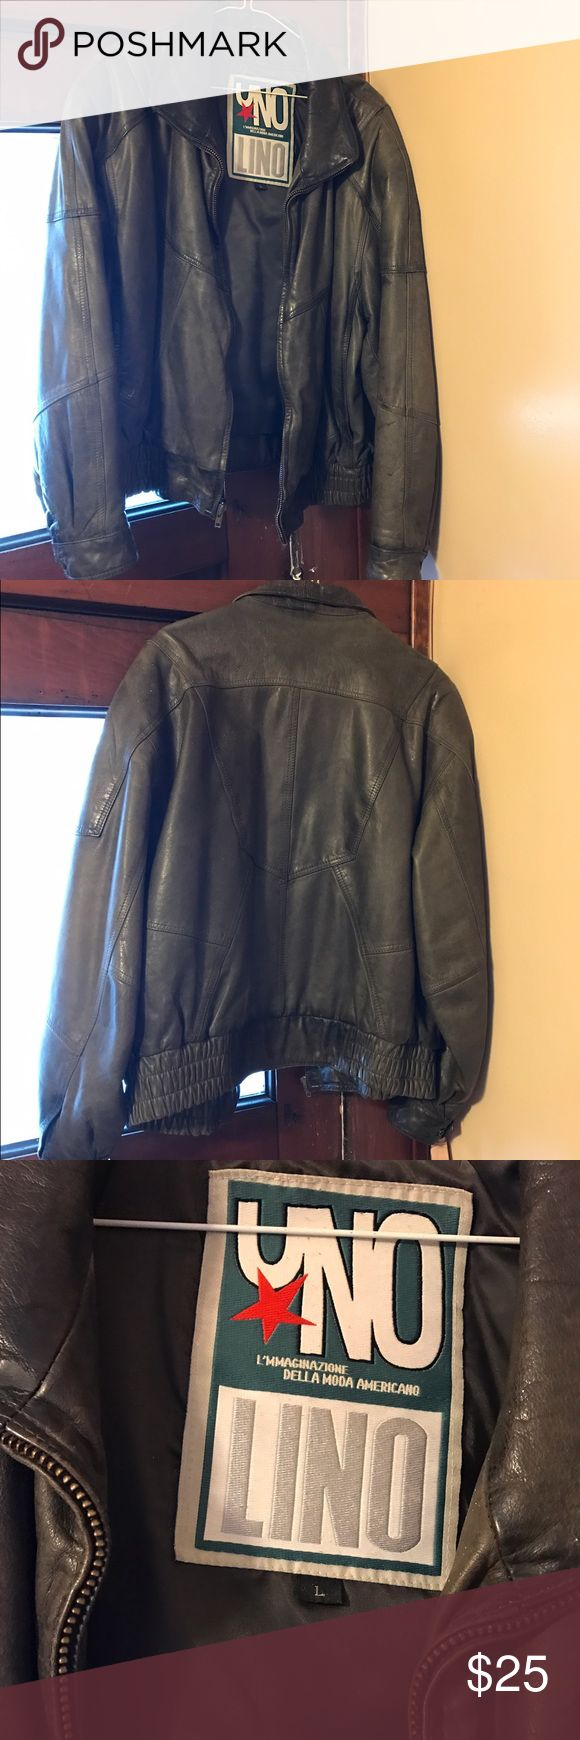 Vintage leather coat Vintage women's size L leather bomber coat. In good condition. From a pet friendly, smoke free home. Jackets & Coats